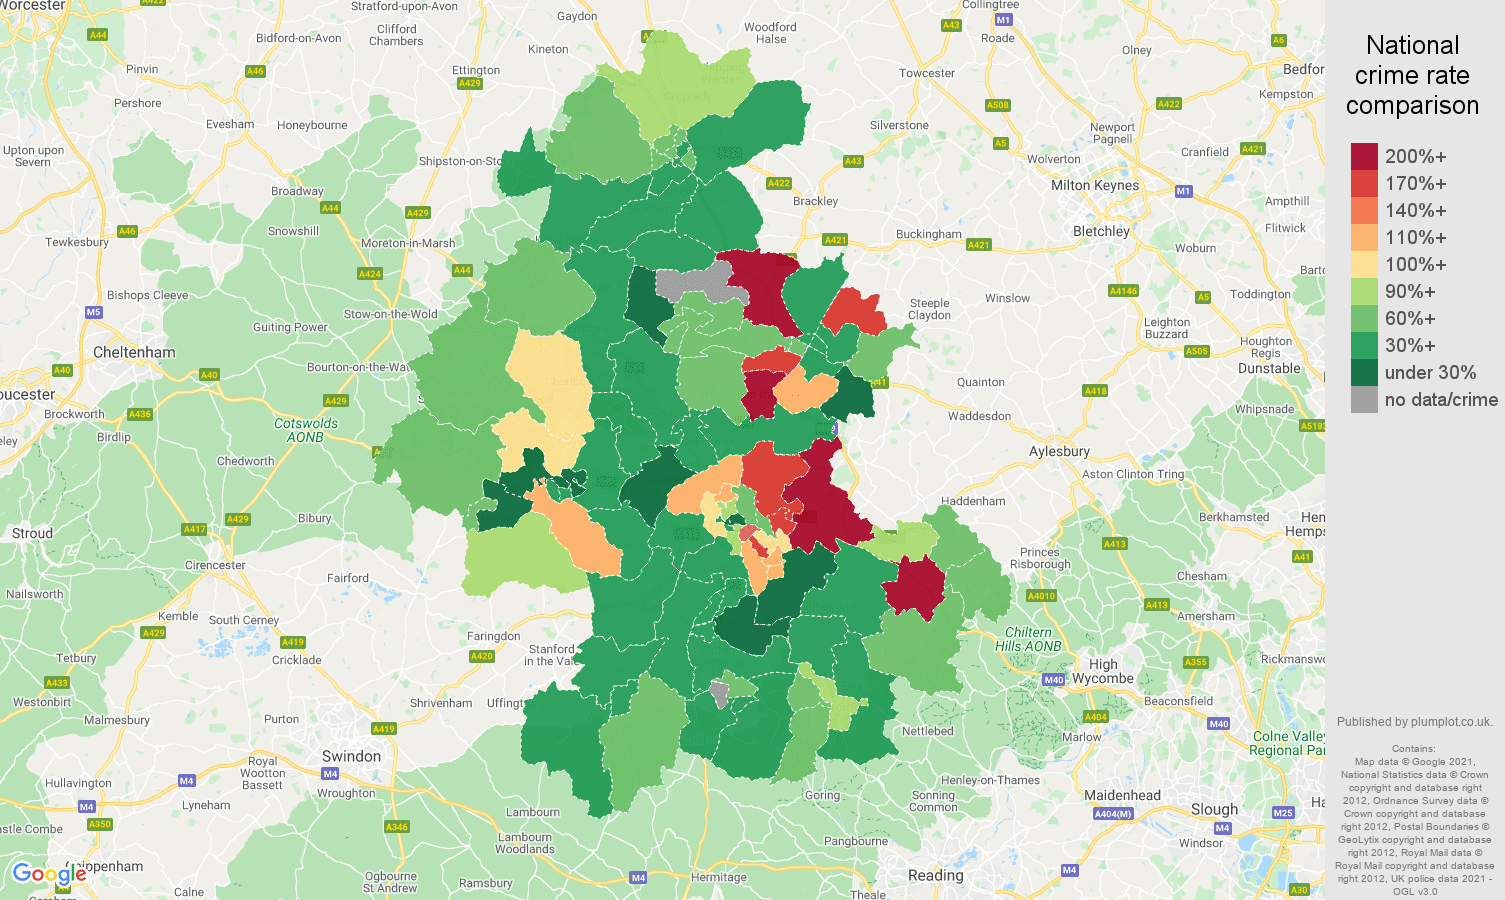 Oxford vehicle crime rate comparison map